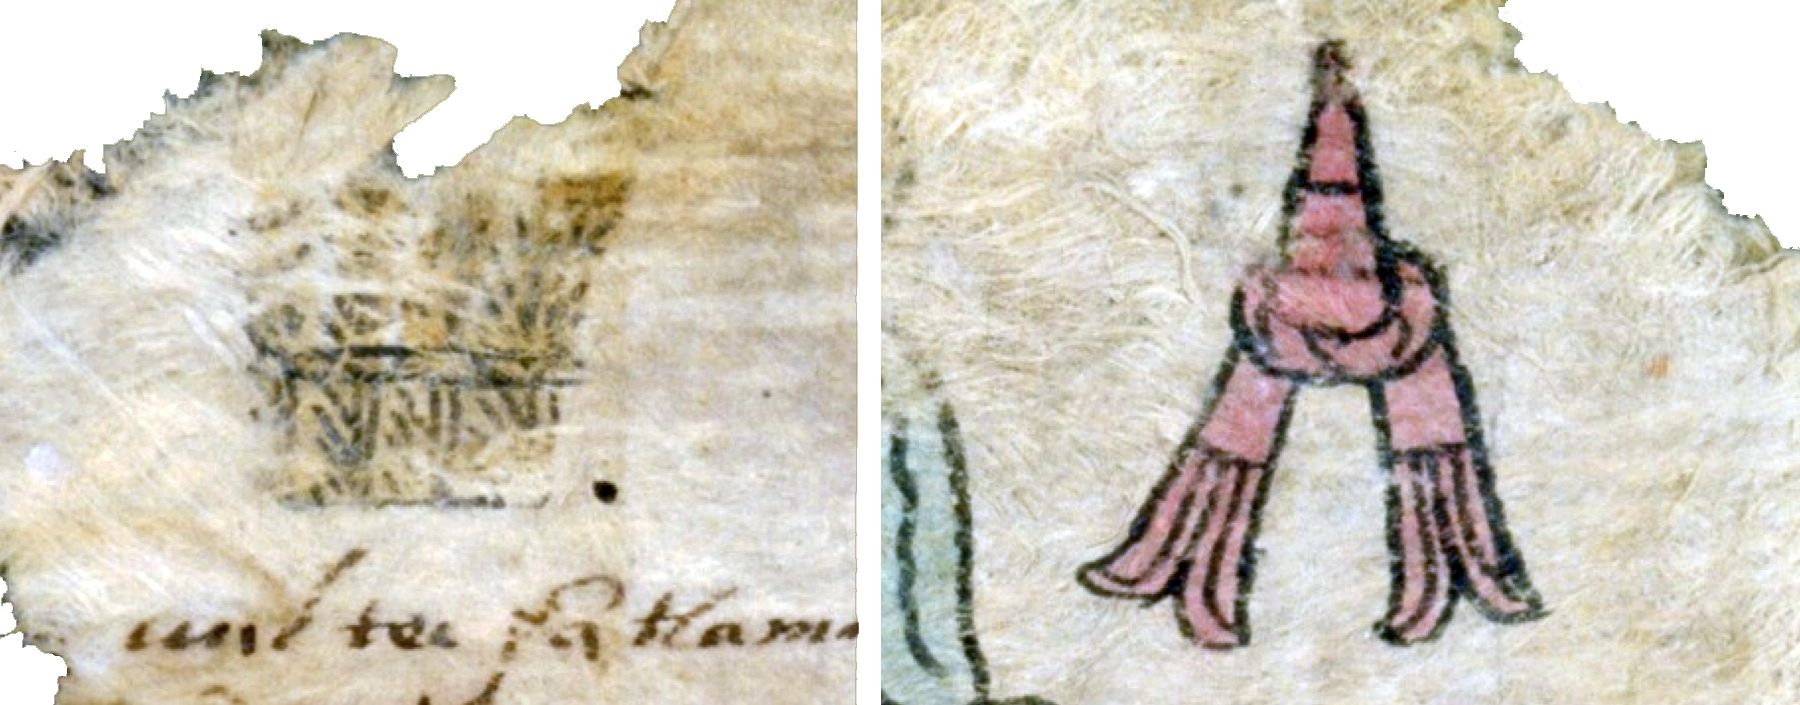 FIGURE 8.  The signs for the months of Ochpaniztli (left) and Tlacaxipehualizti (right) on folio 13r of the Matrícula de Tributos.